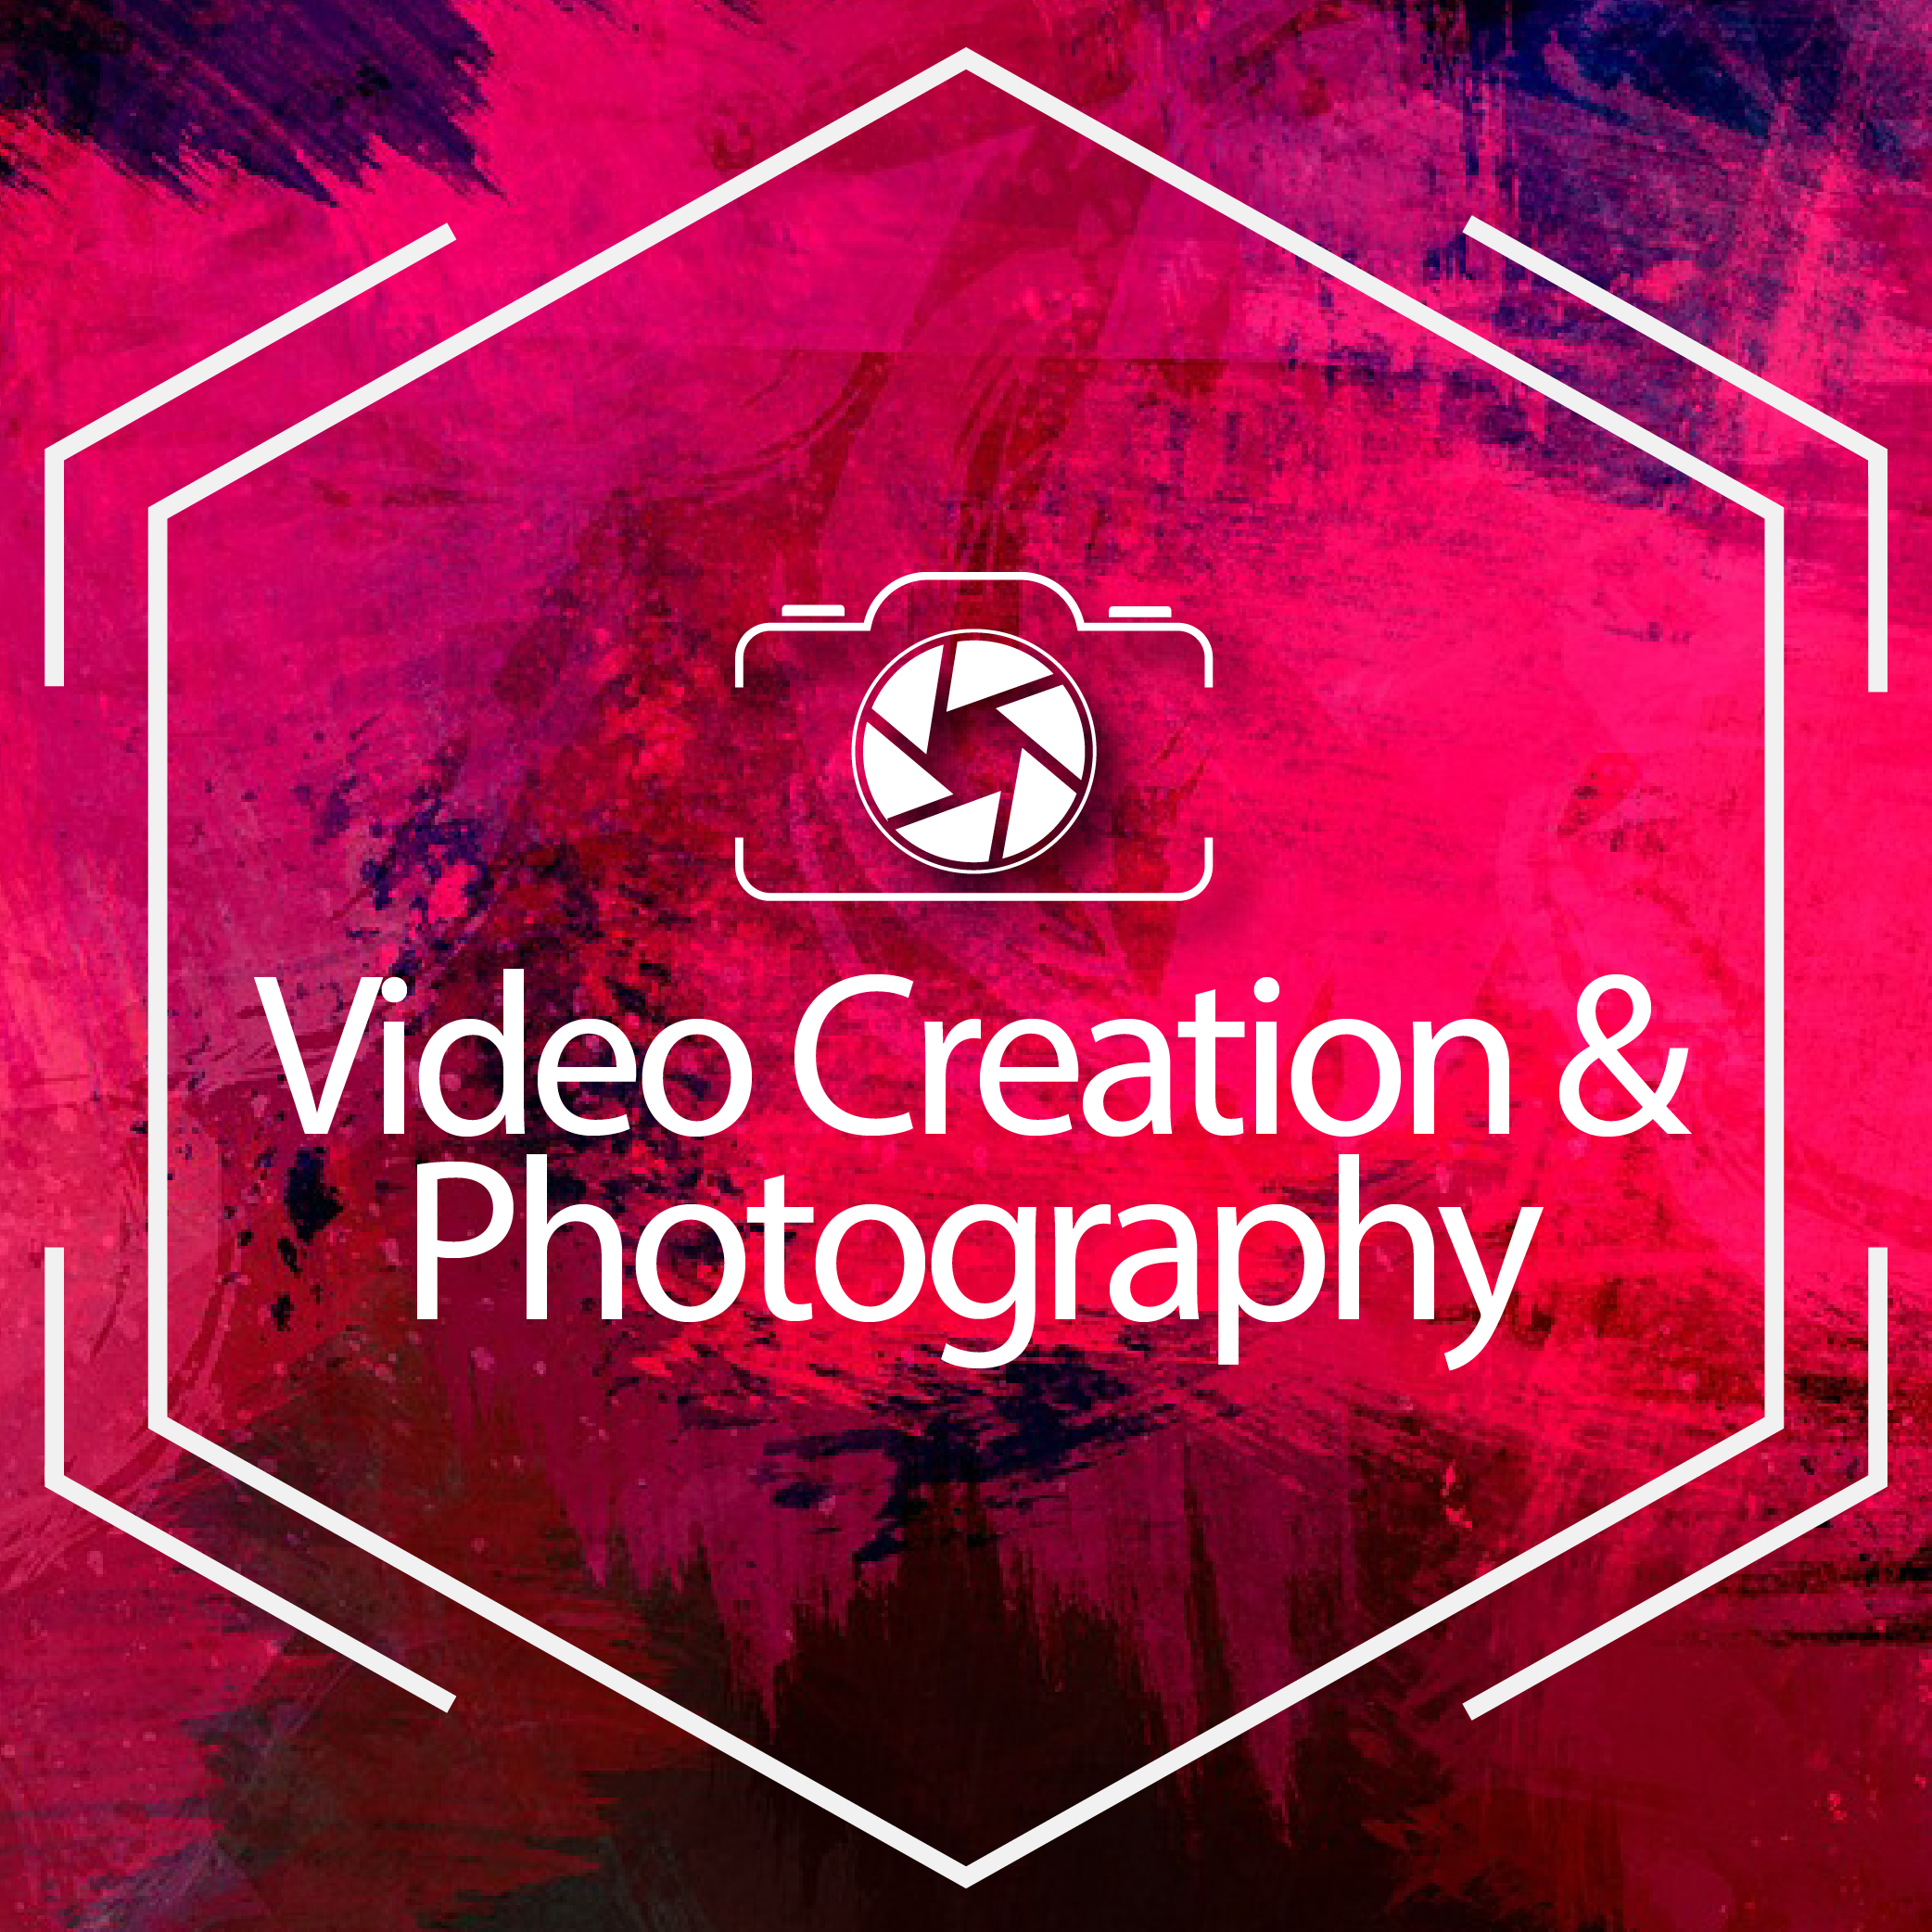 Video Creation & Photography